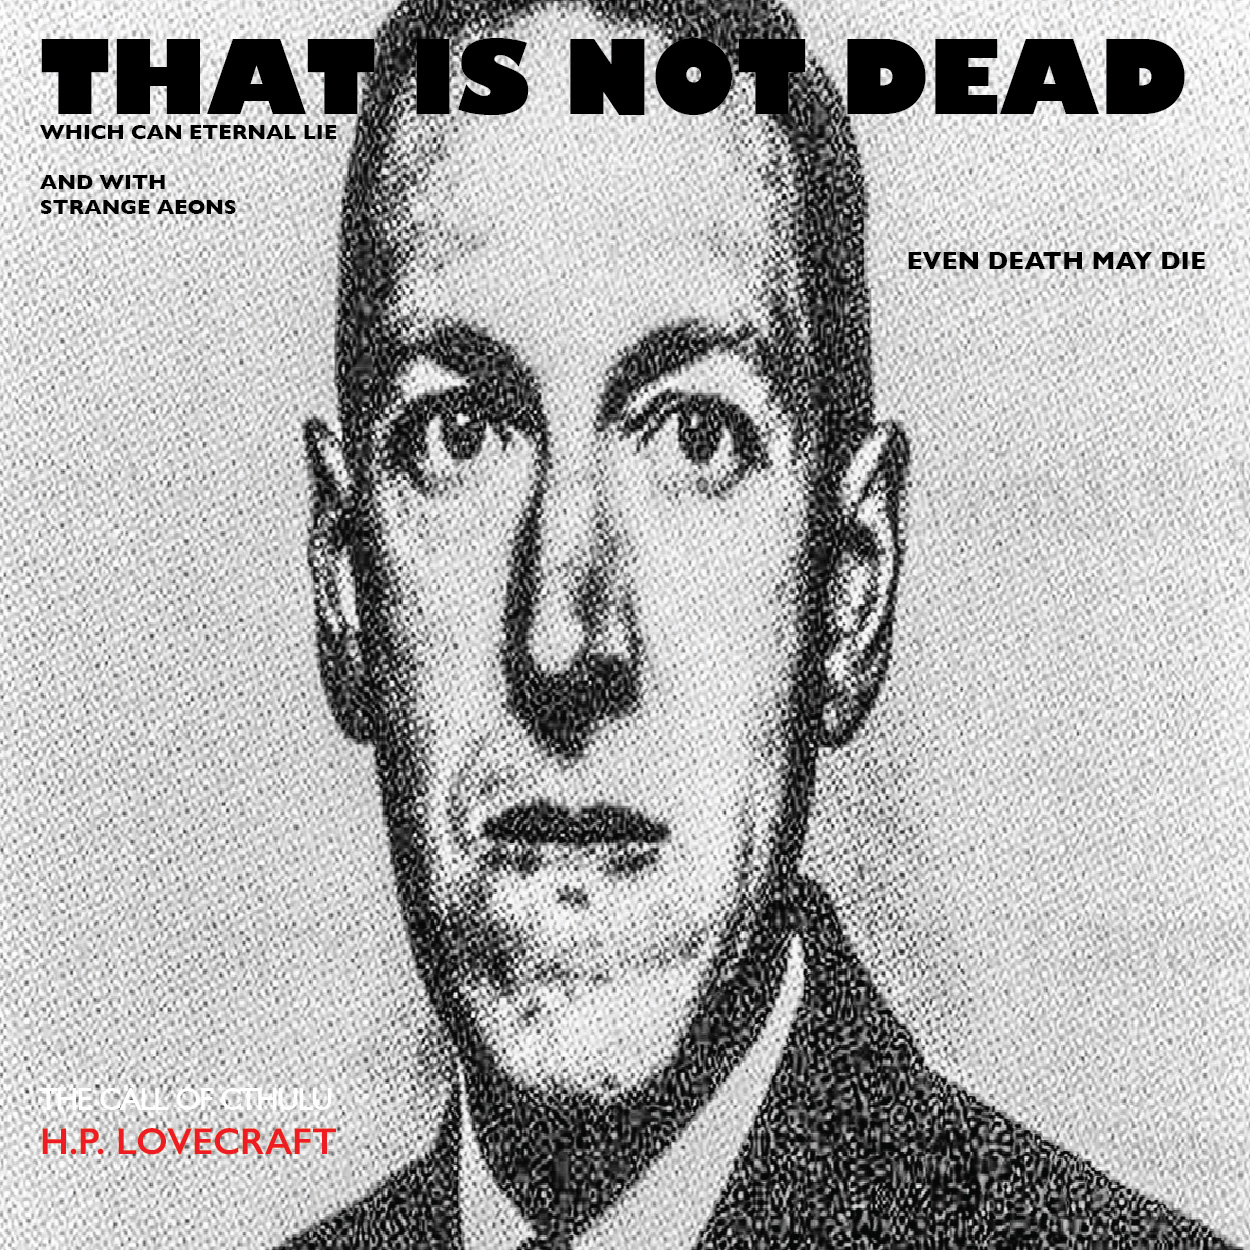 lovecraft.strangeaeons